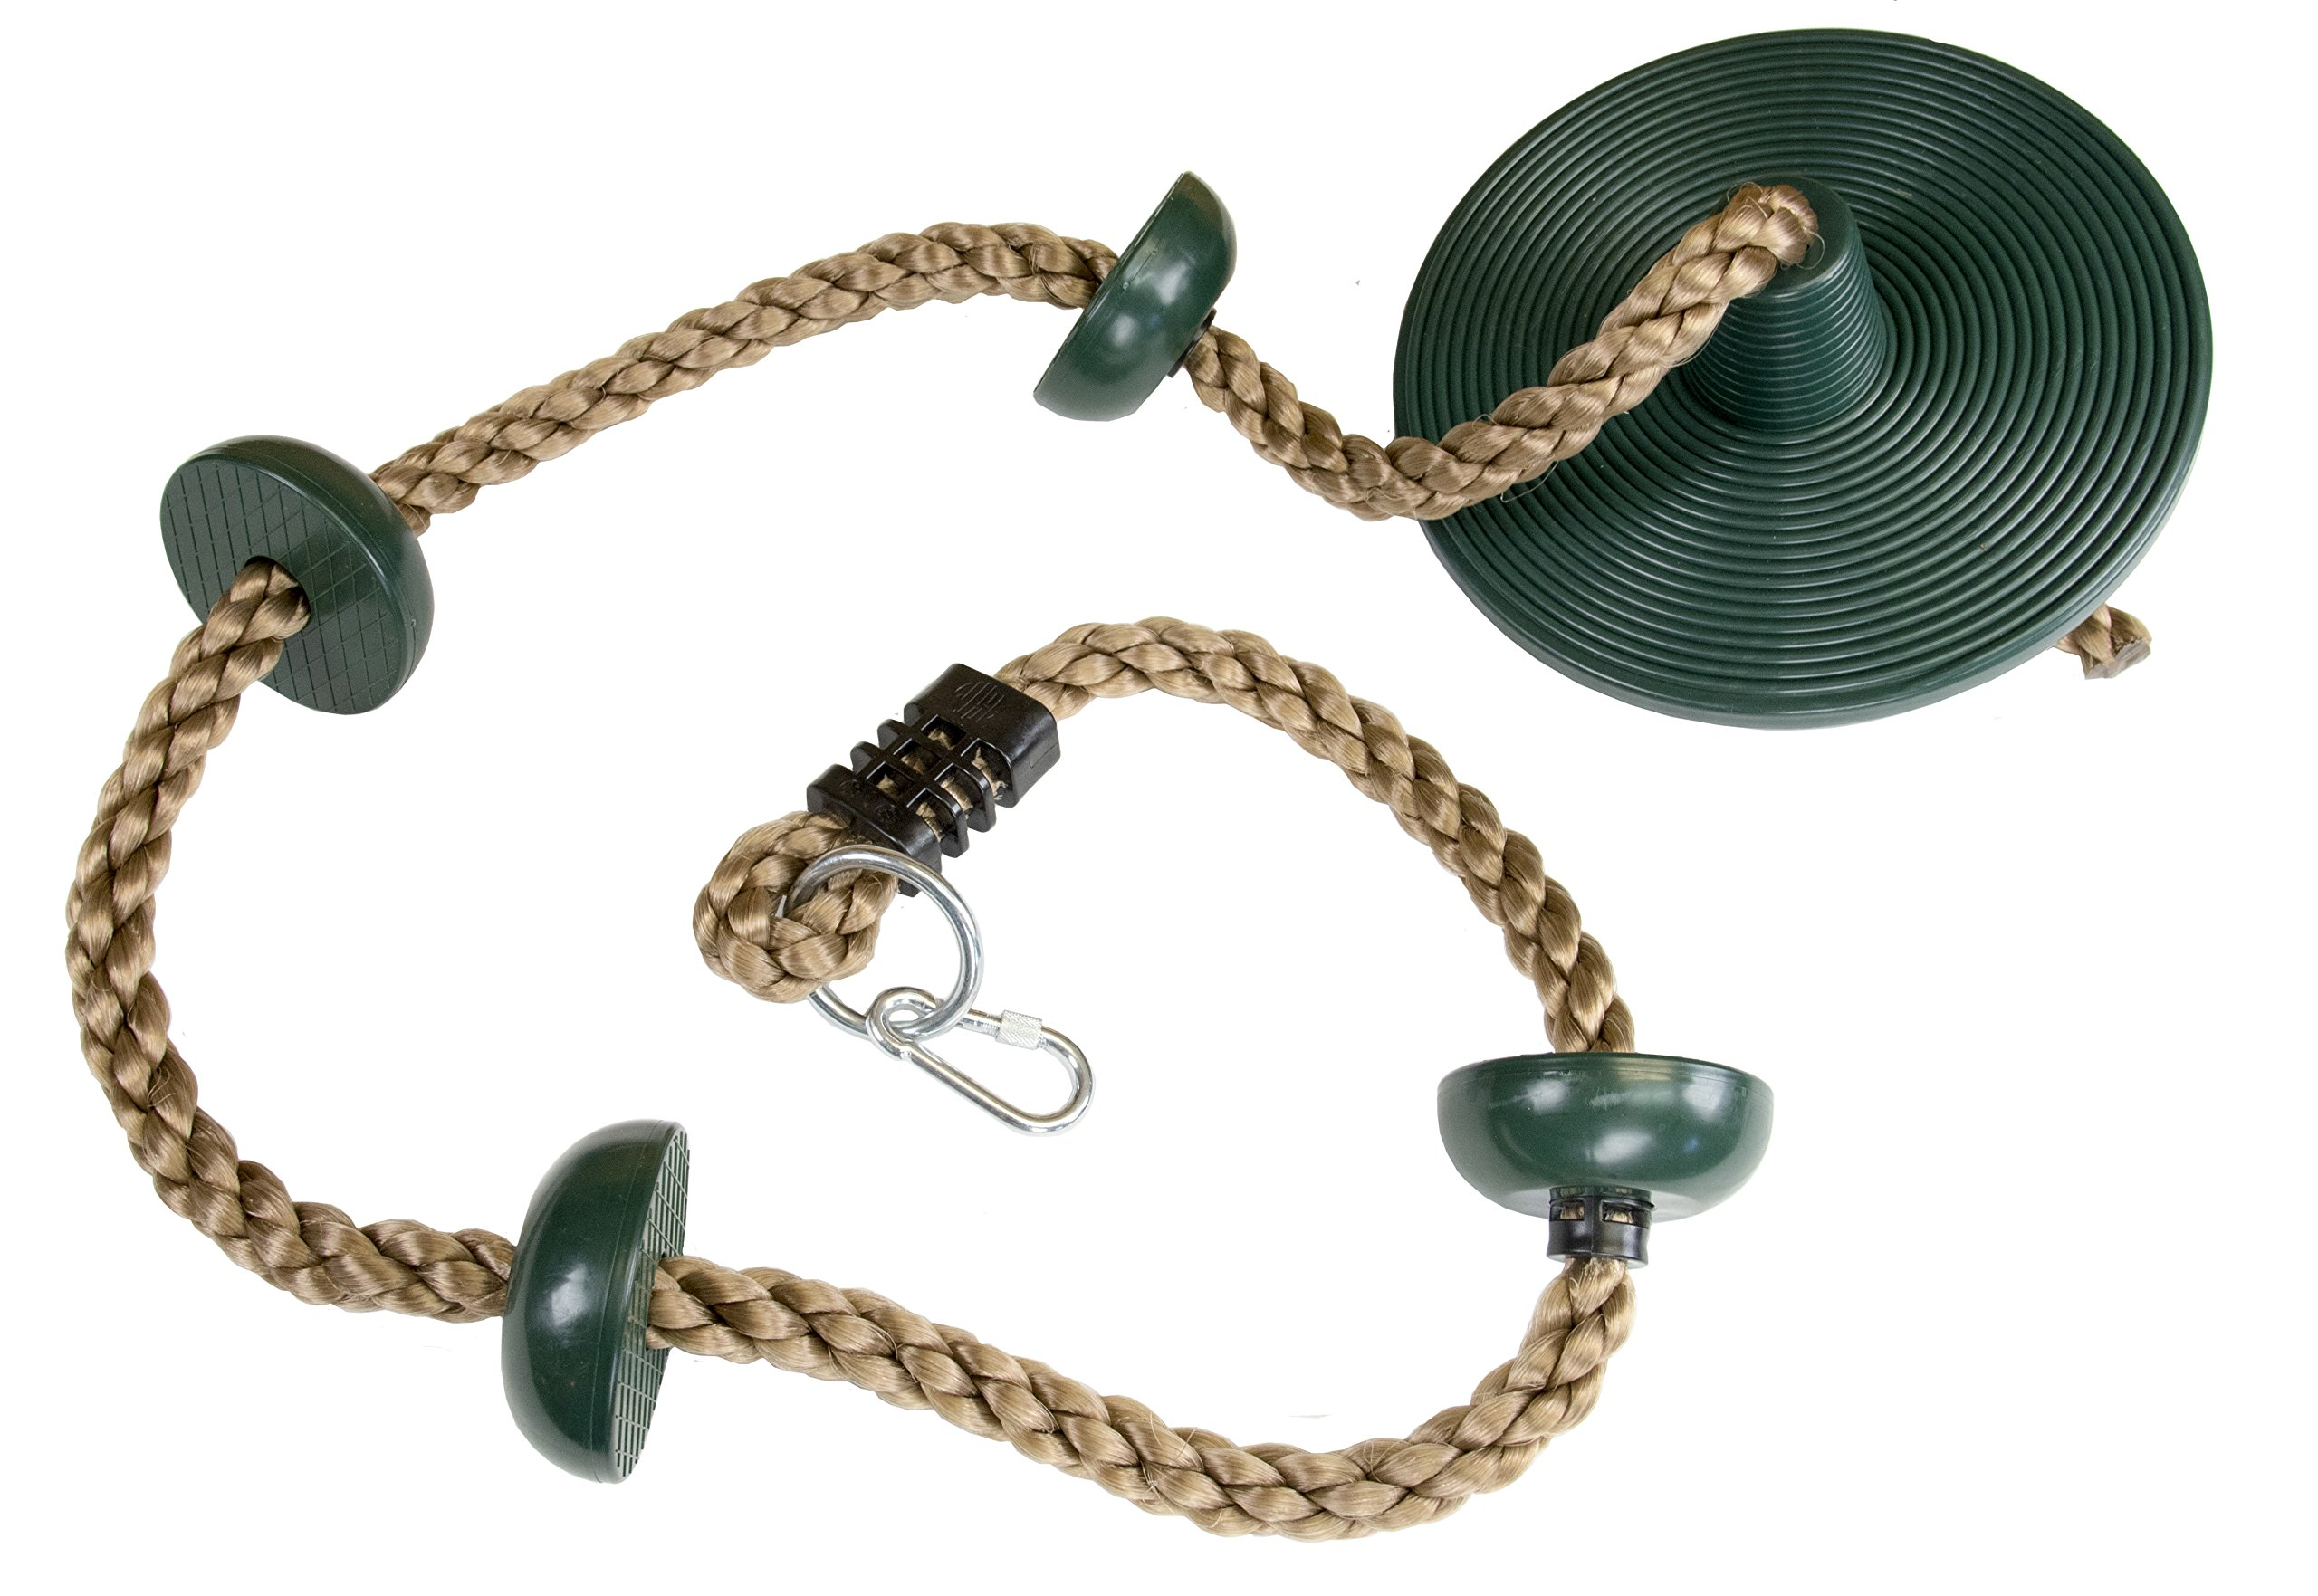 Squirrel Products Climbing Rope with Disc Swing - Easily Hang from Swing Set or Tree Swing Straps with The Included Carabiner